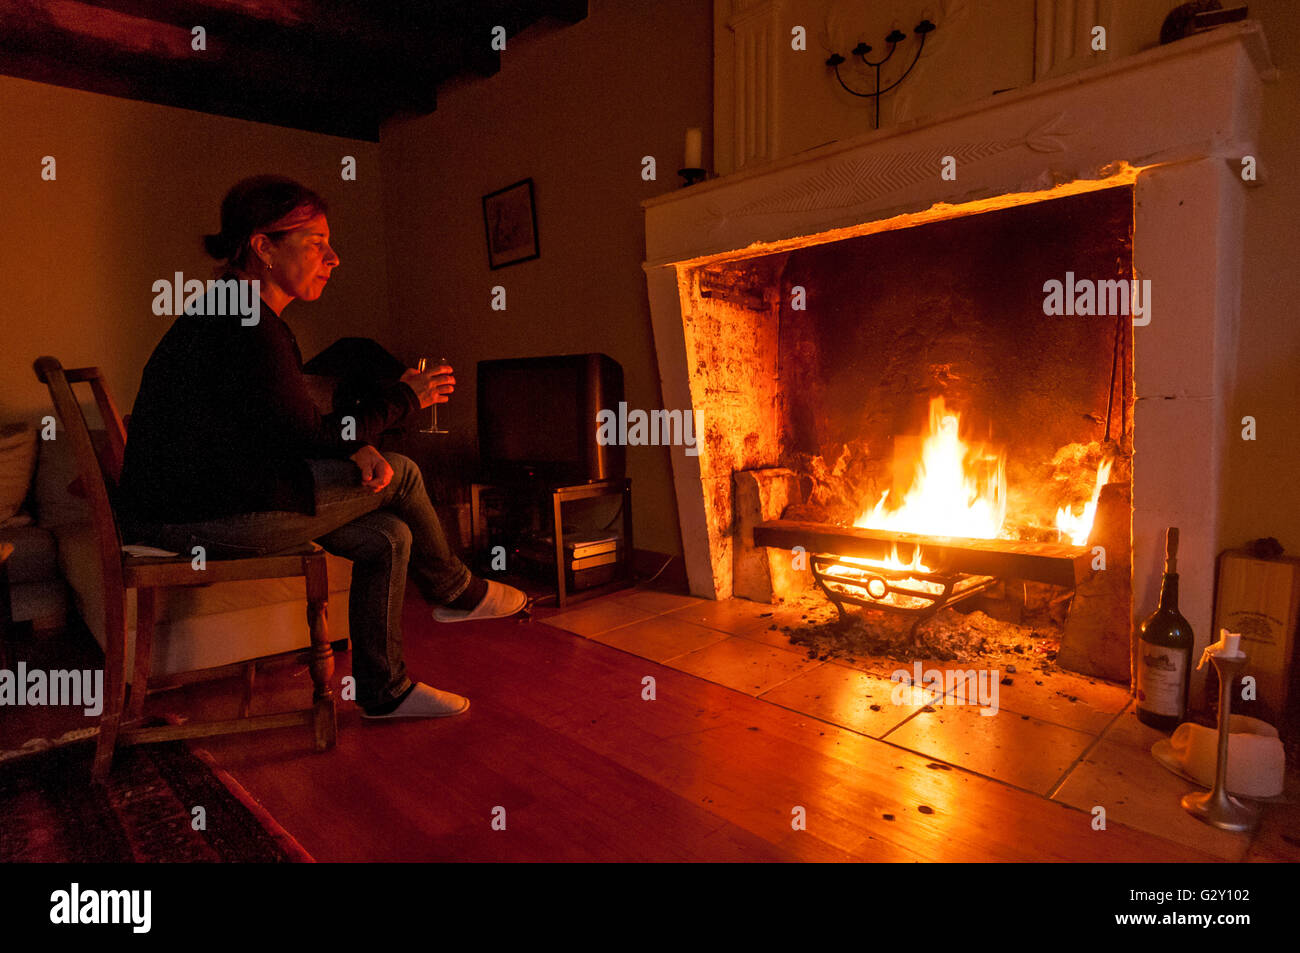 A woman enjoys the warmth and comfort of a roaring log fire. - Stock Image